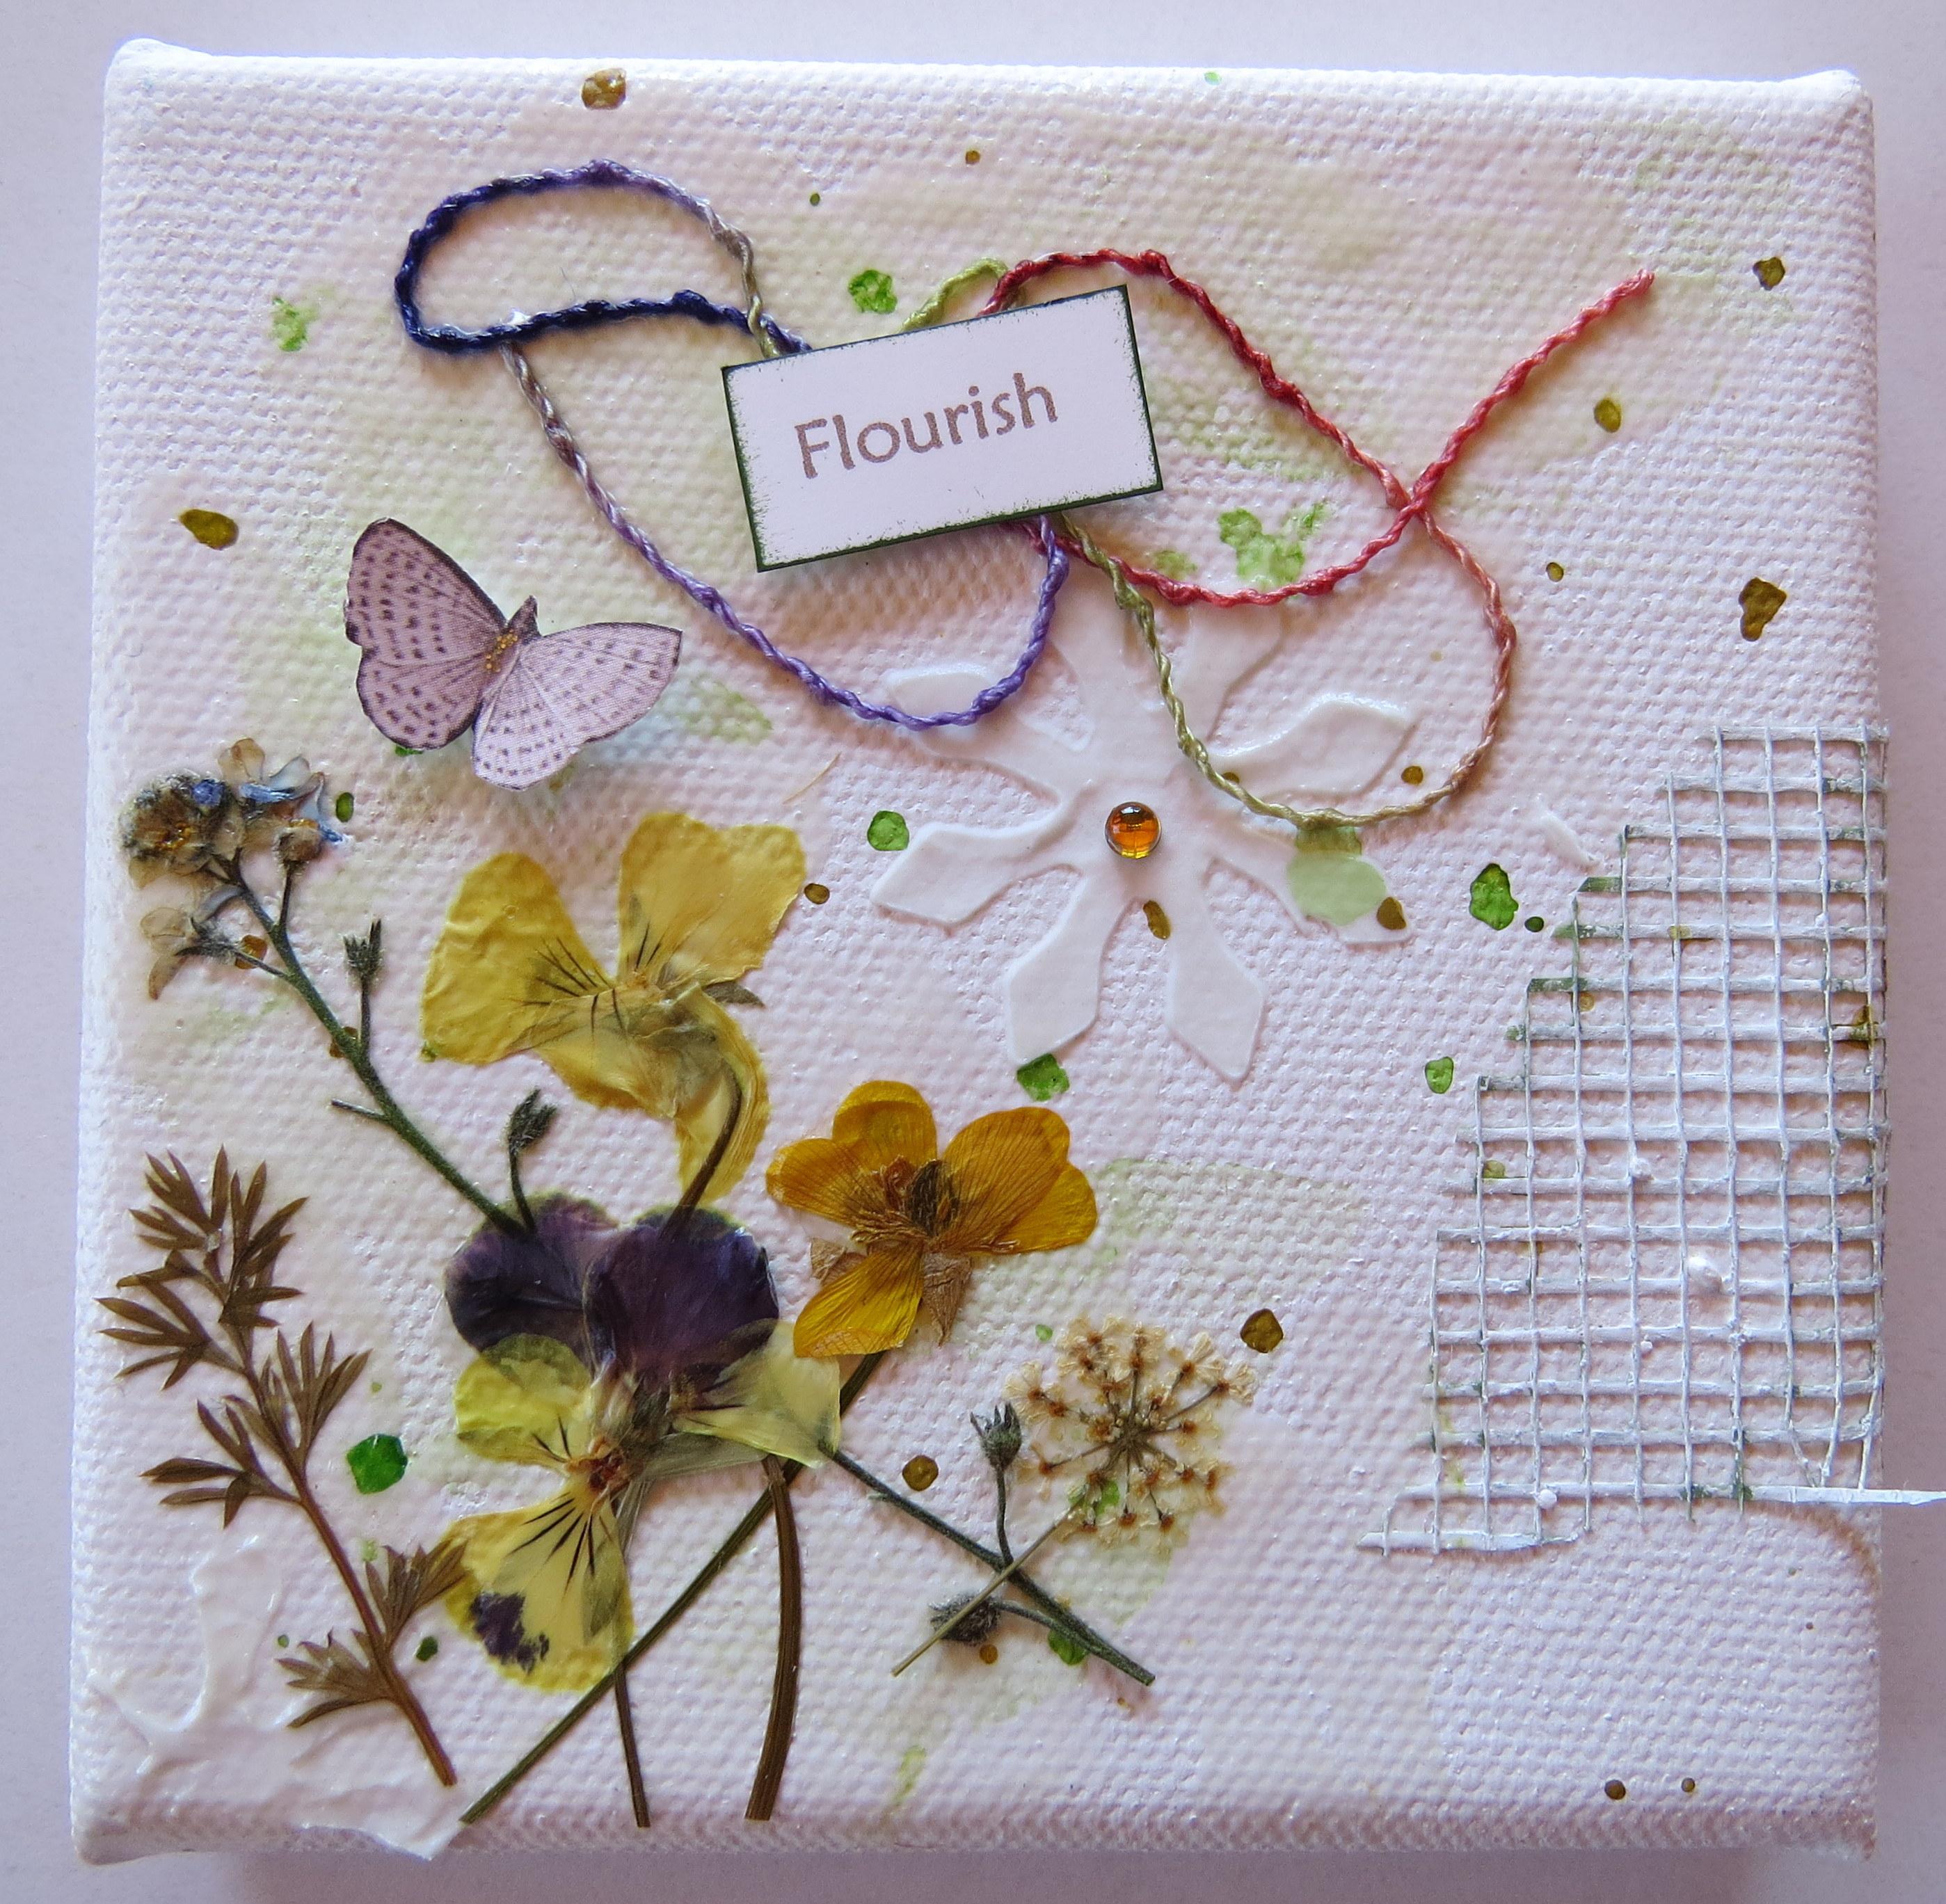 How to scrapbook dried flowers - Mini Canvases3